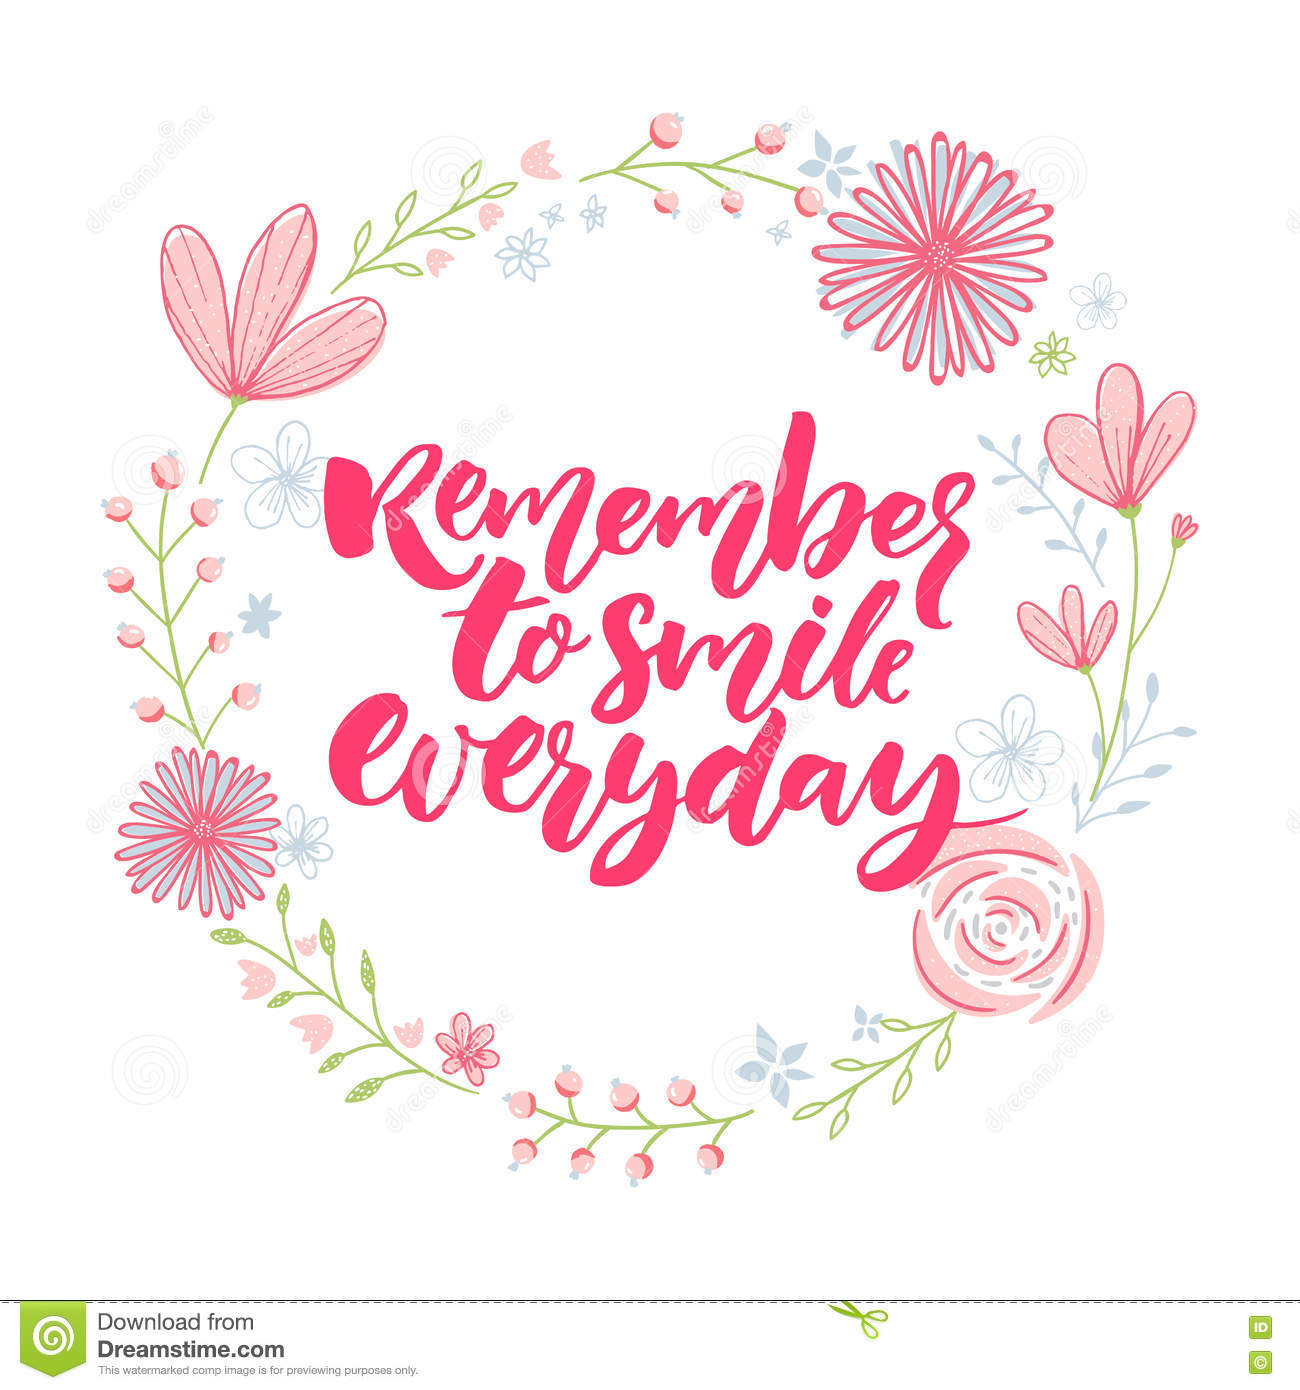 Floral Inspirational Quote Wallpaper Remember To Smile Everyday Inspirational Saying In Floral